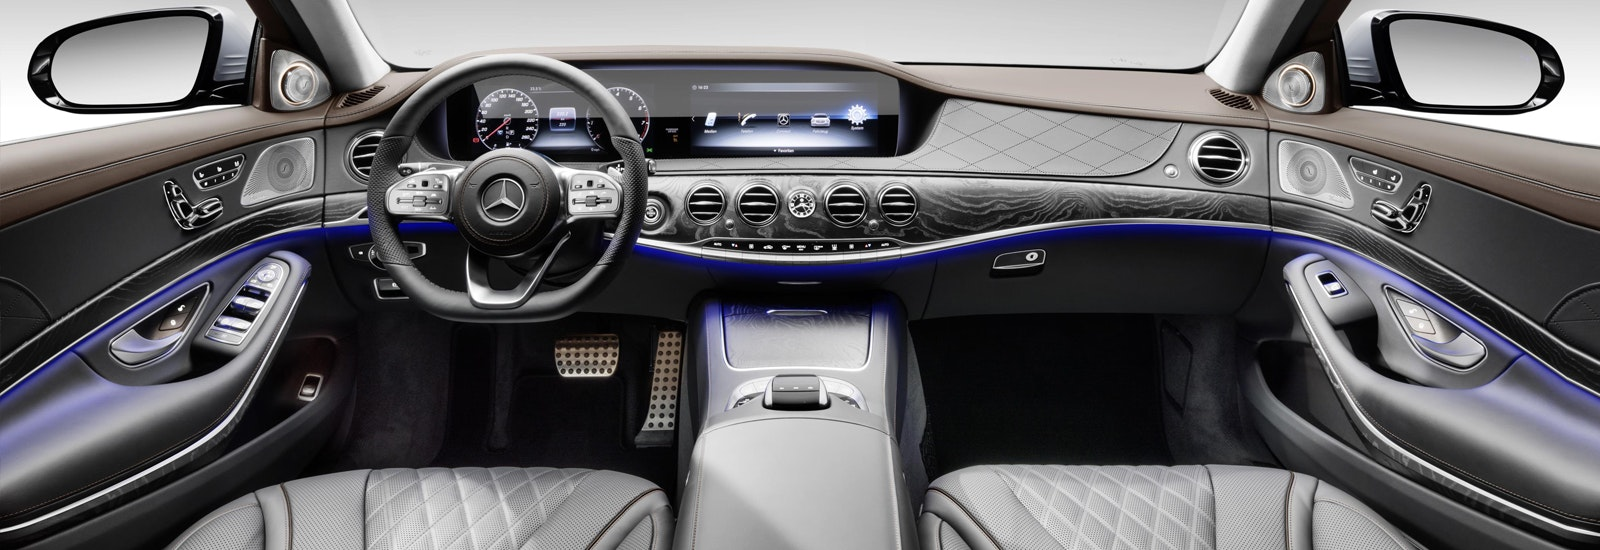 2018 Mercedes S-Class facelift price & release date | carwow